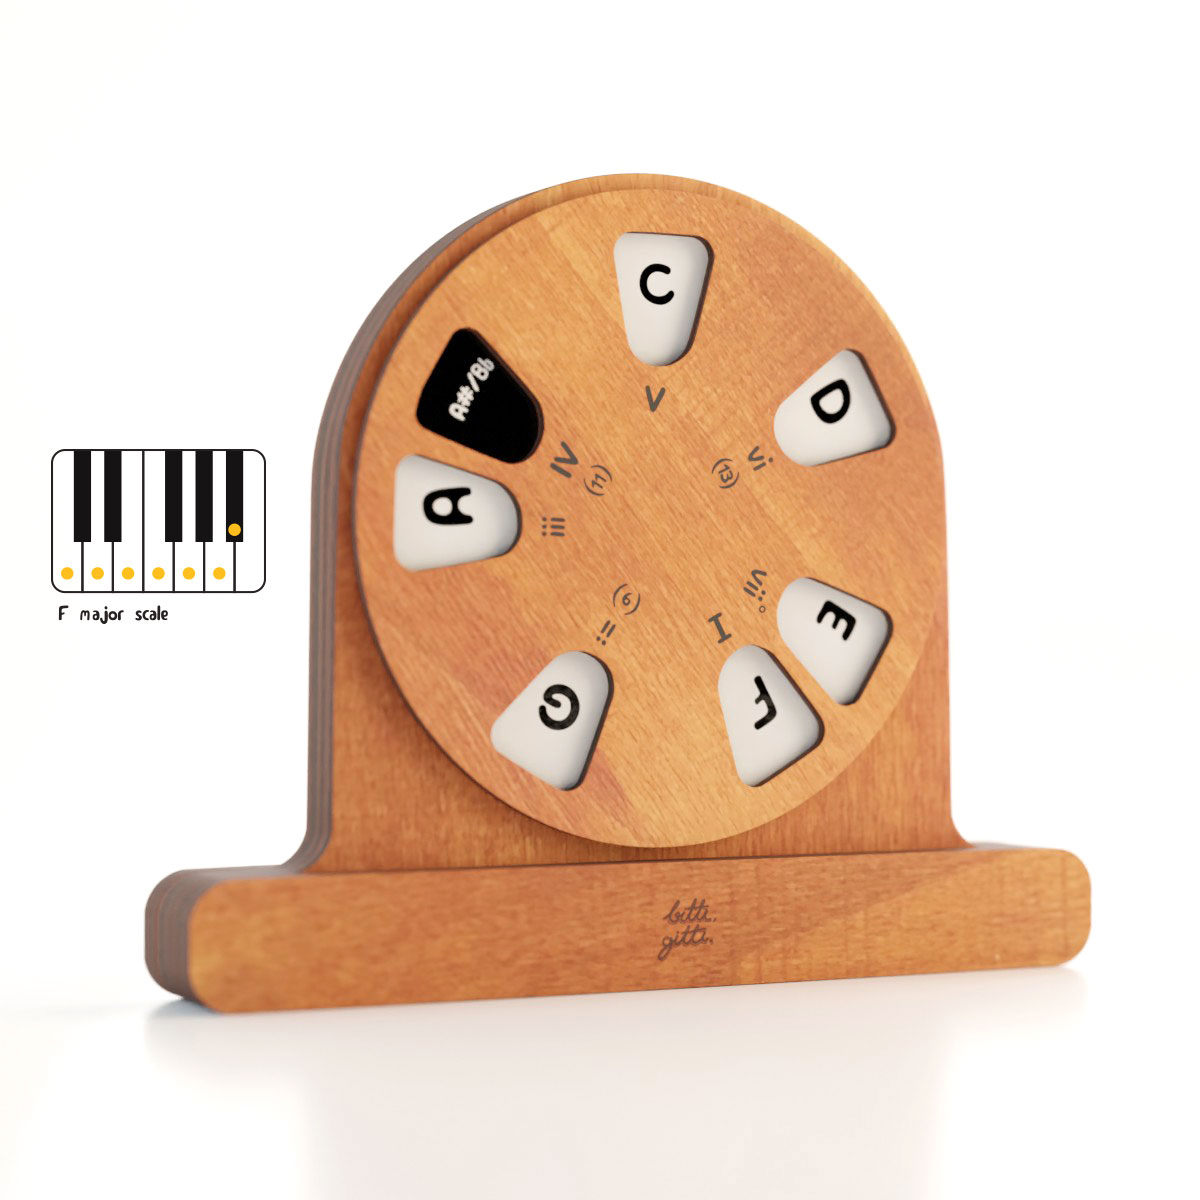 the wooden musical toy